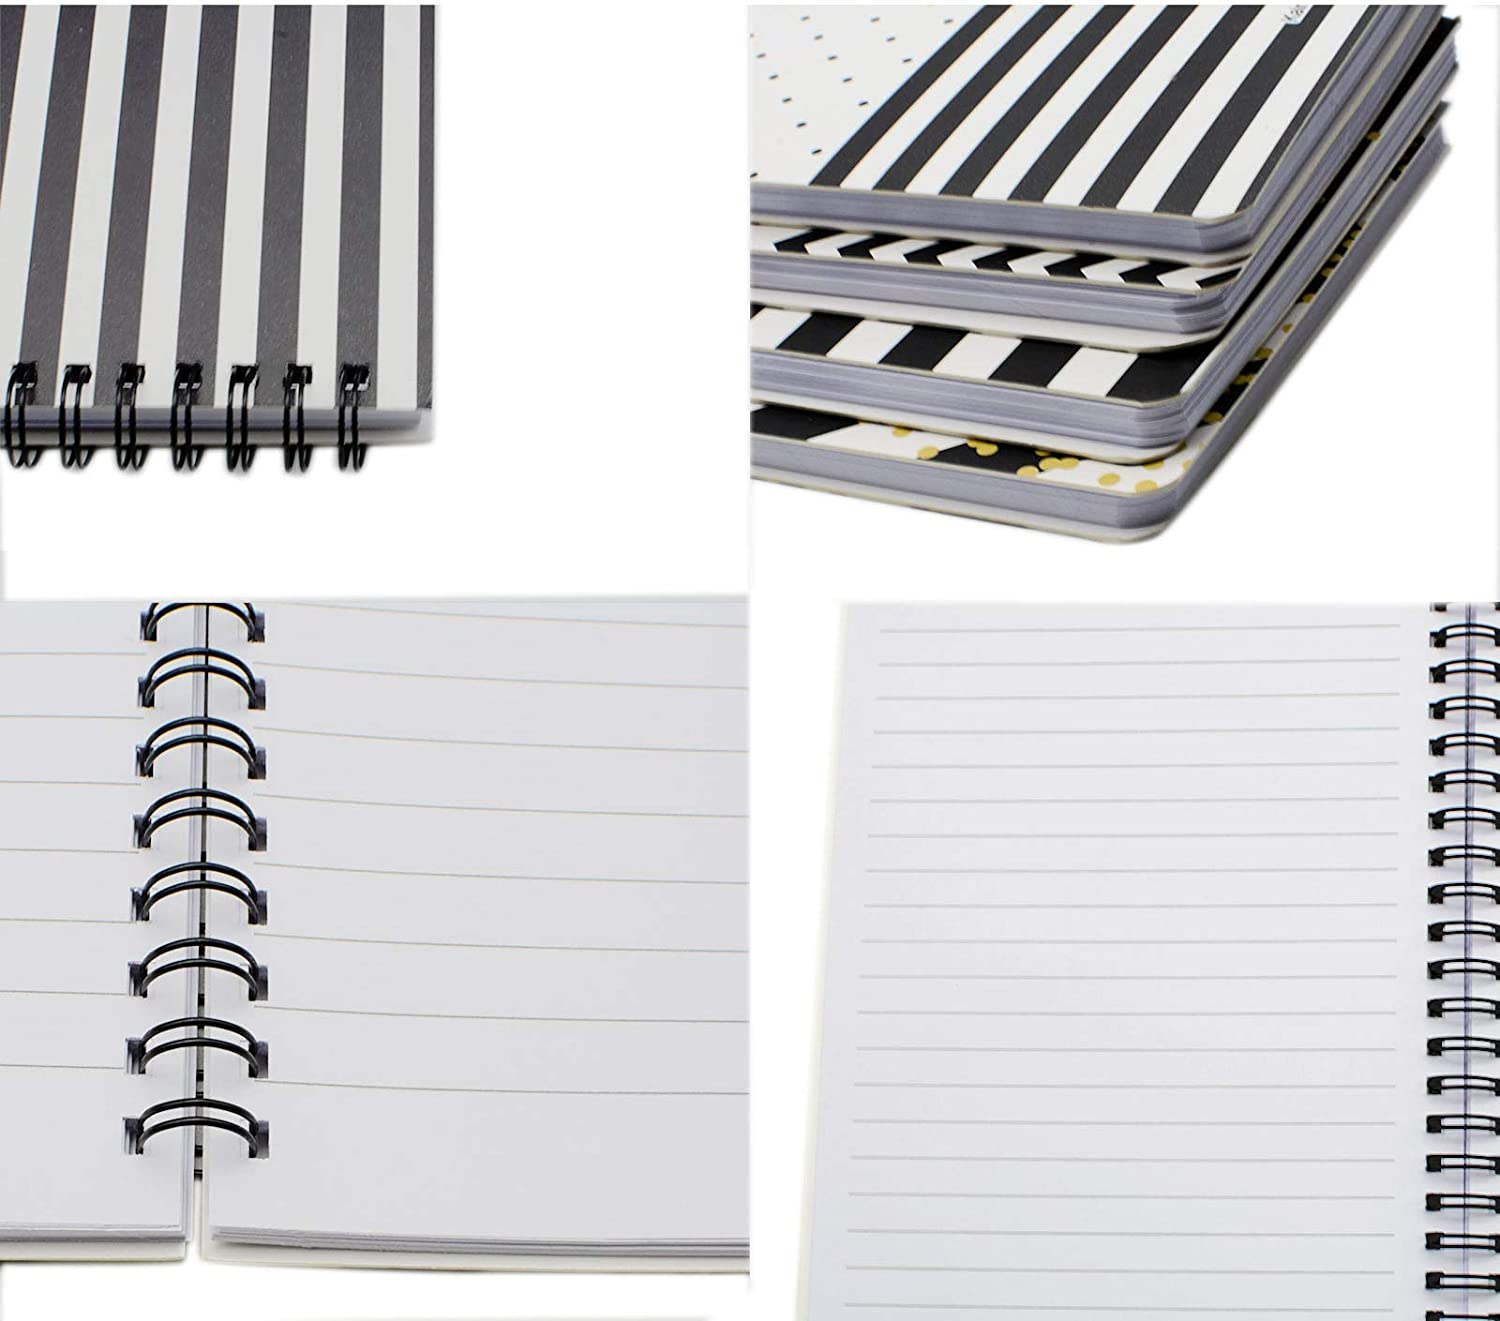 style 7- Black White 4 pack College Ruled Lined Notebook White Paper for Students Office School Supplies Yansanido 4 Pack 80 Sheets Spiral Notebook Journal 8.26 x 5.9 Inch A5